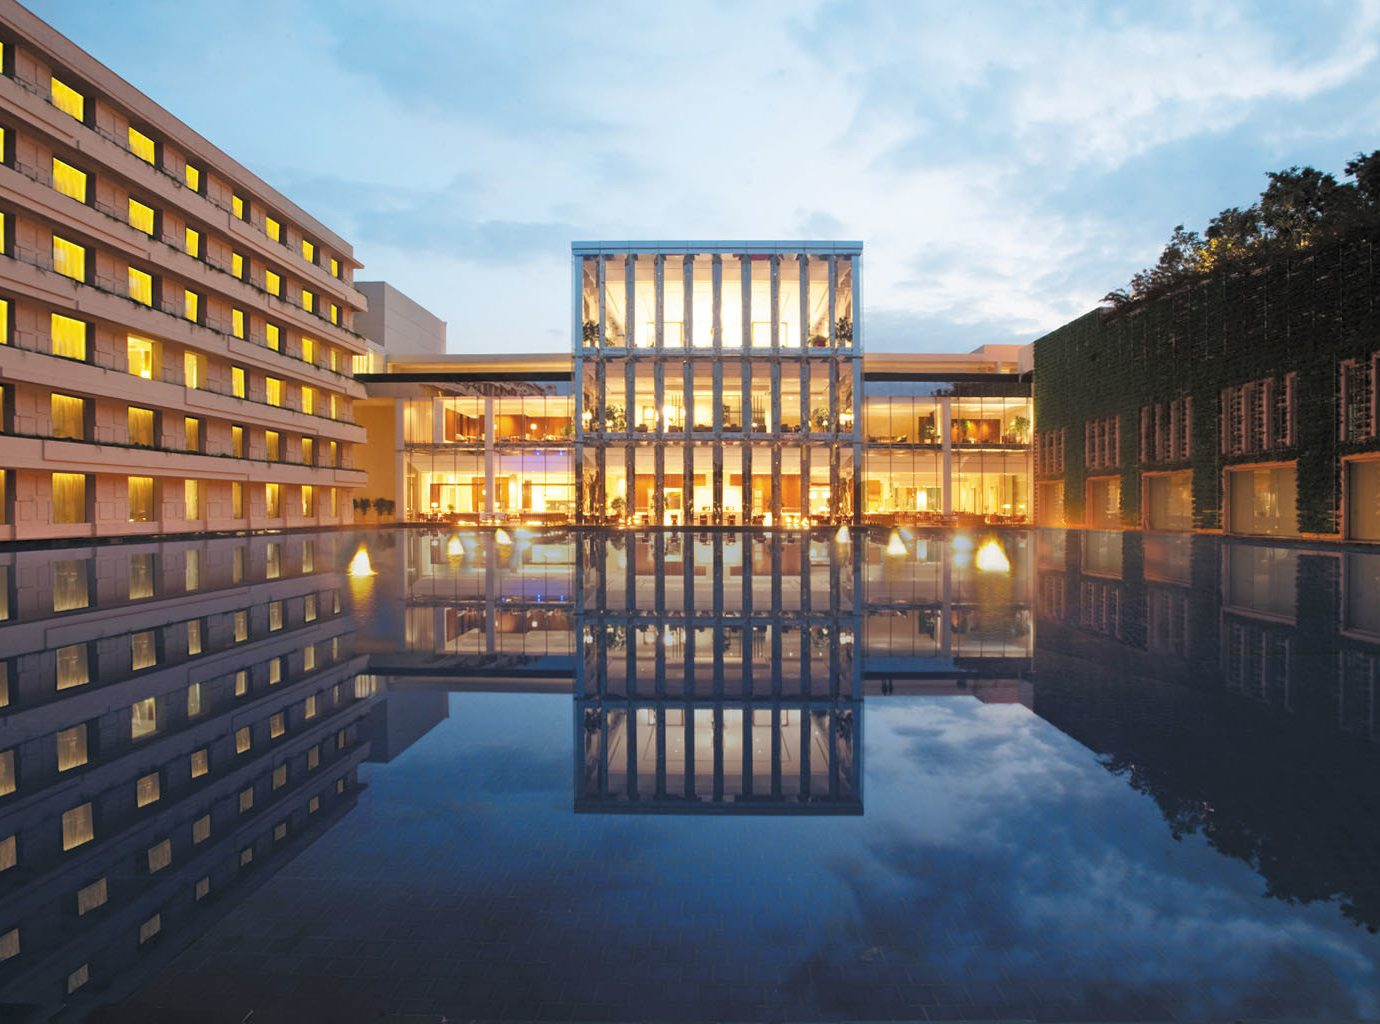 Hotels Luxury Travel Pool outdoor sky property building Architecture house reflection condominium estate facade palace